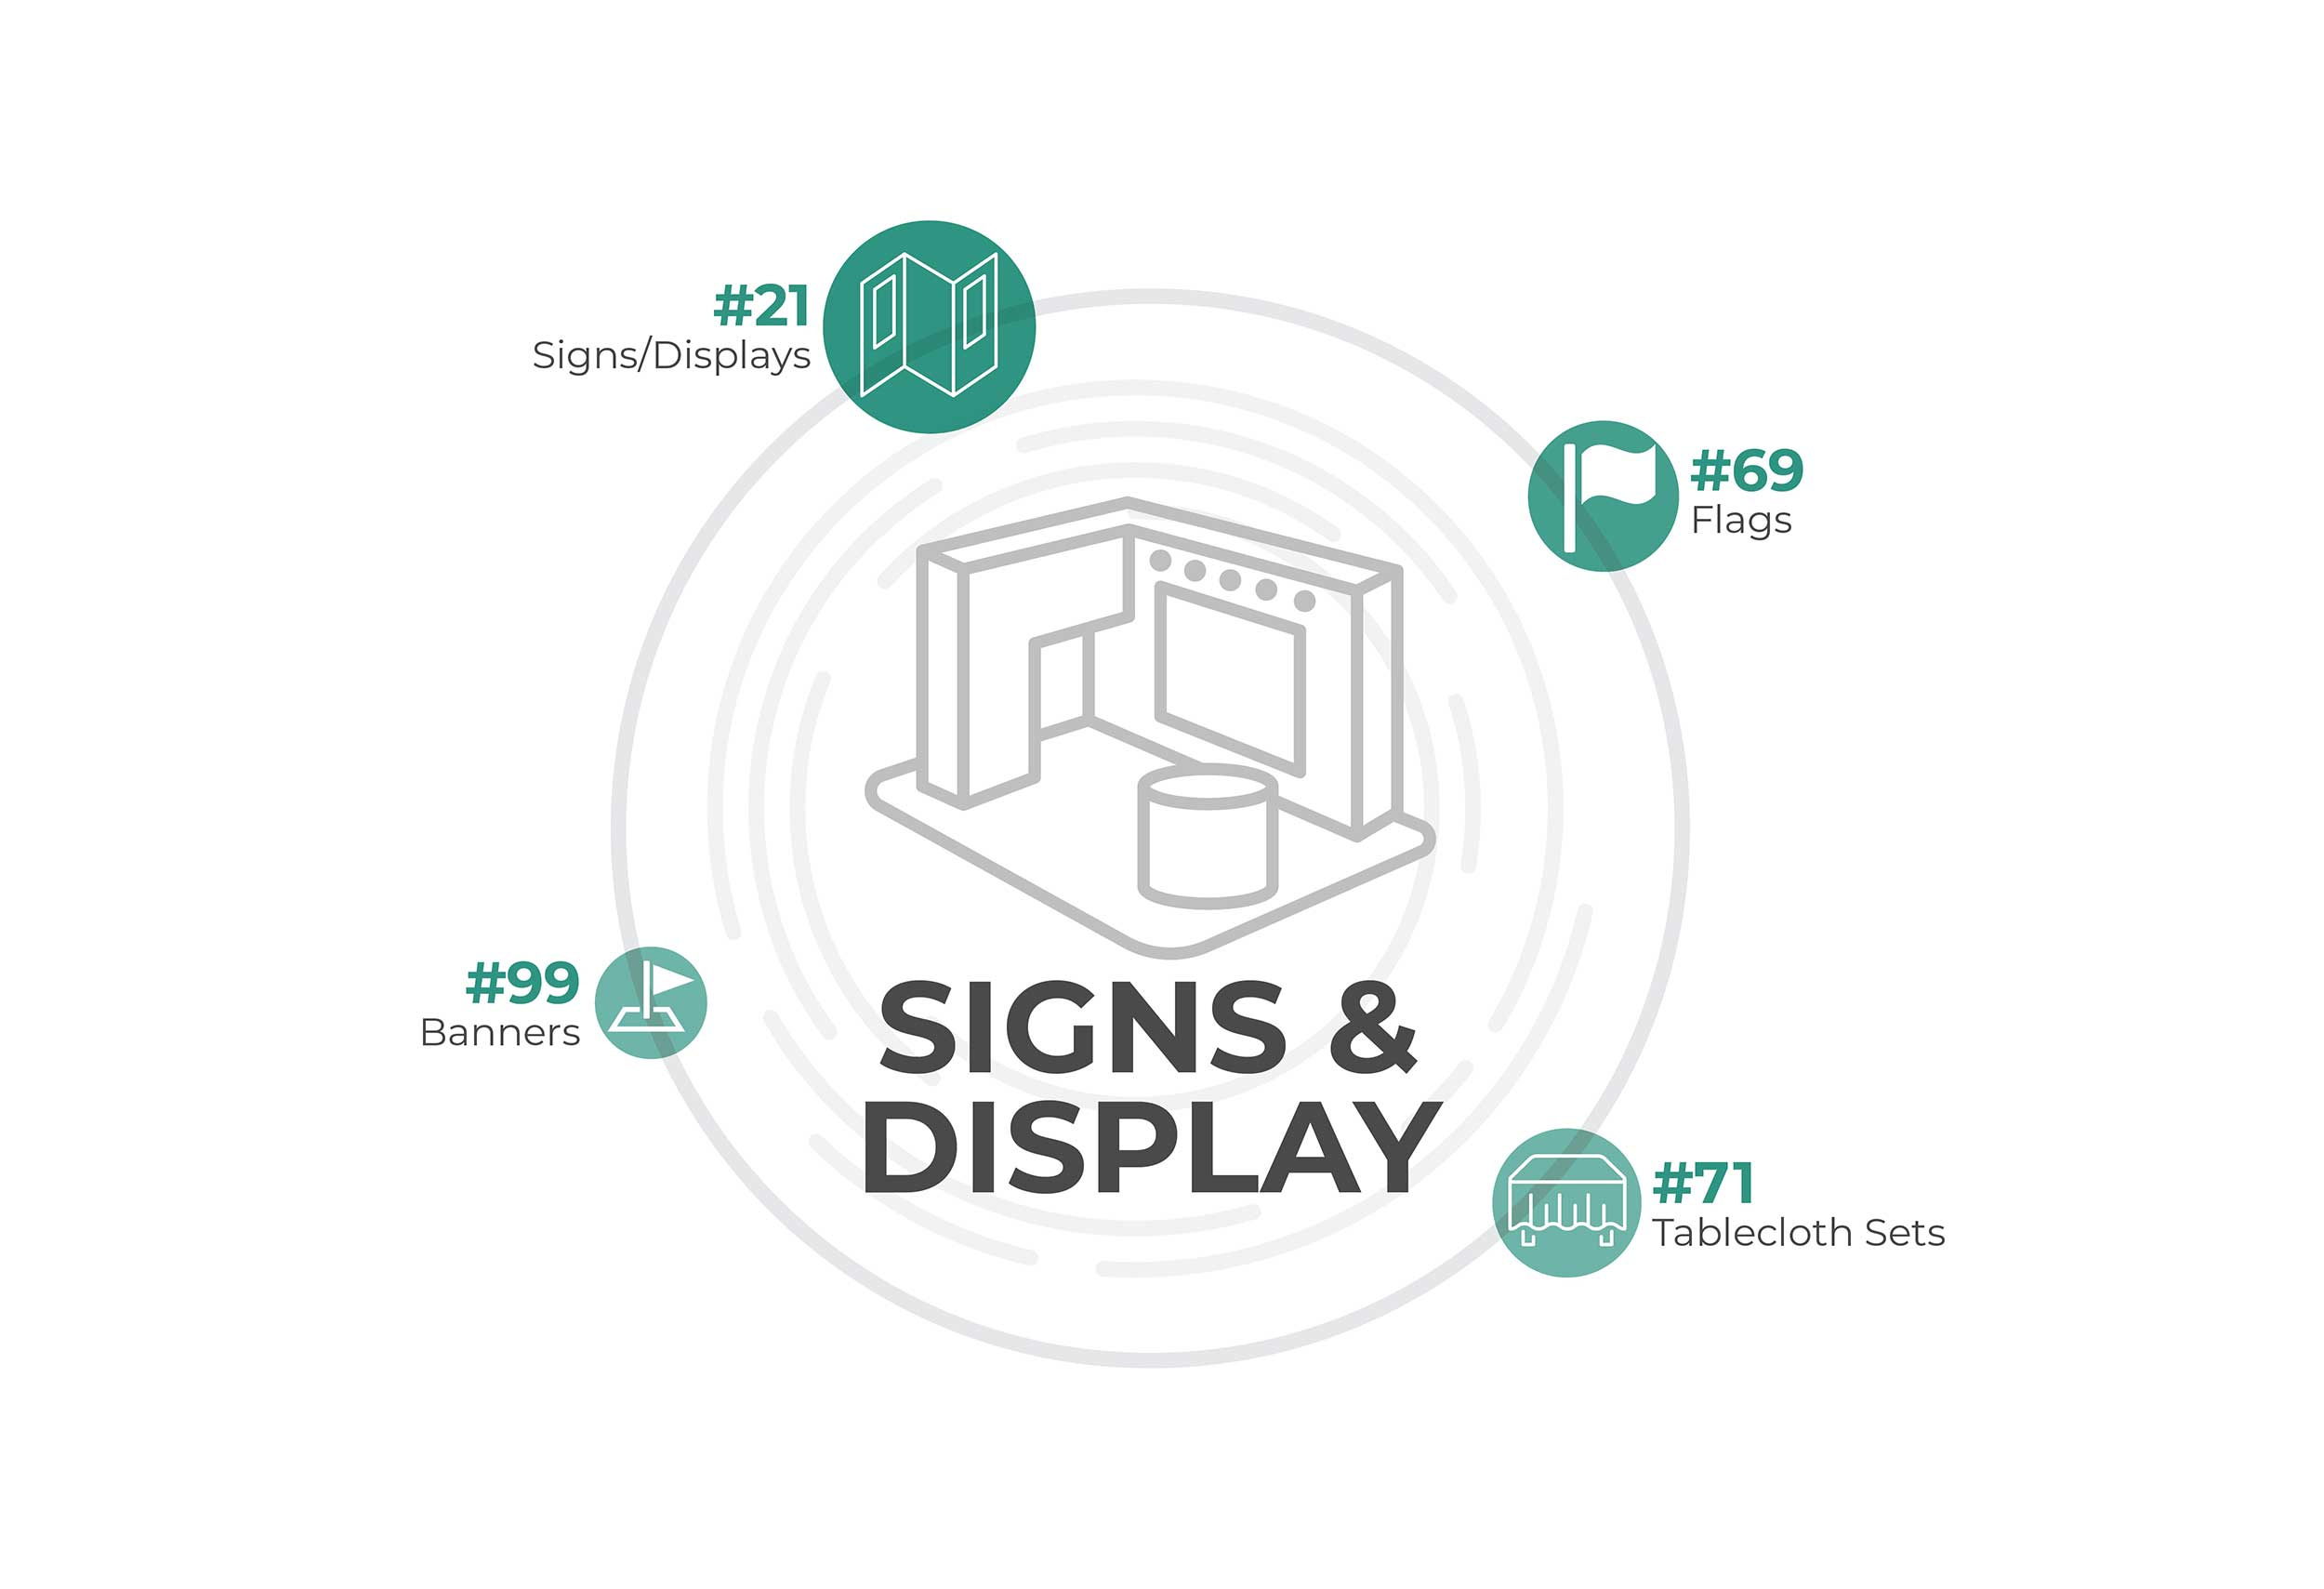 signs & display image